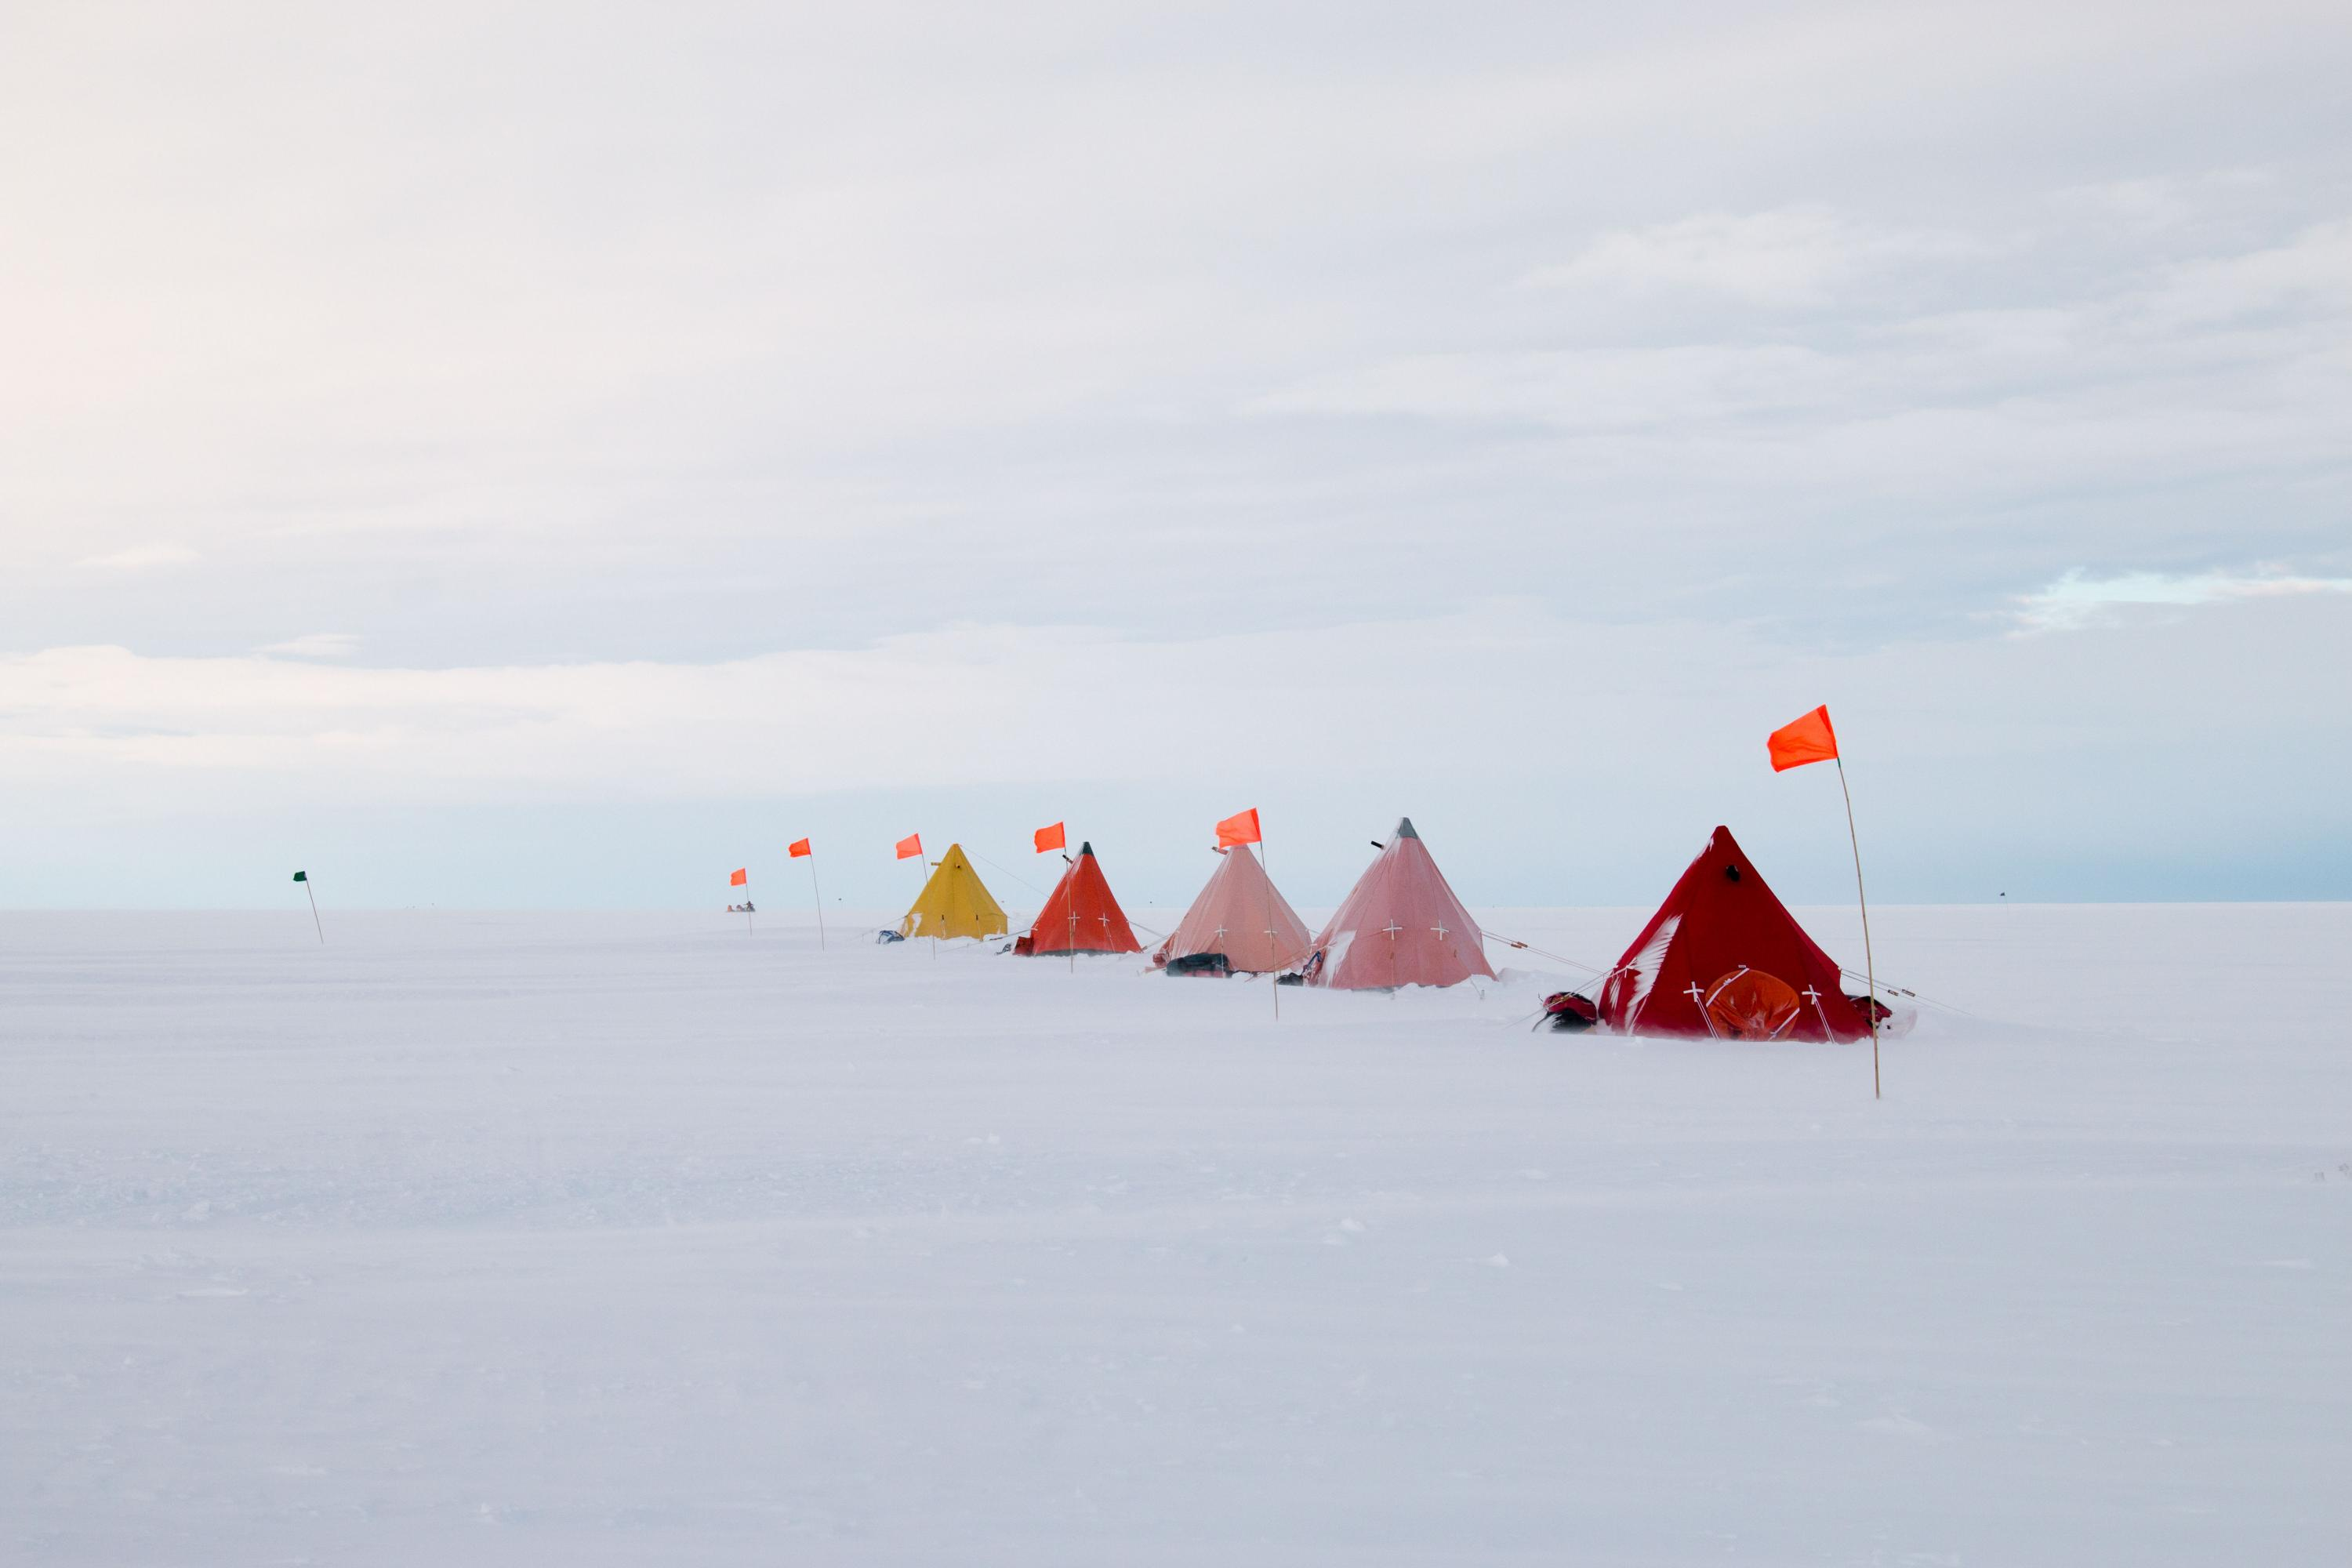 Thwaites Glacier research camp